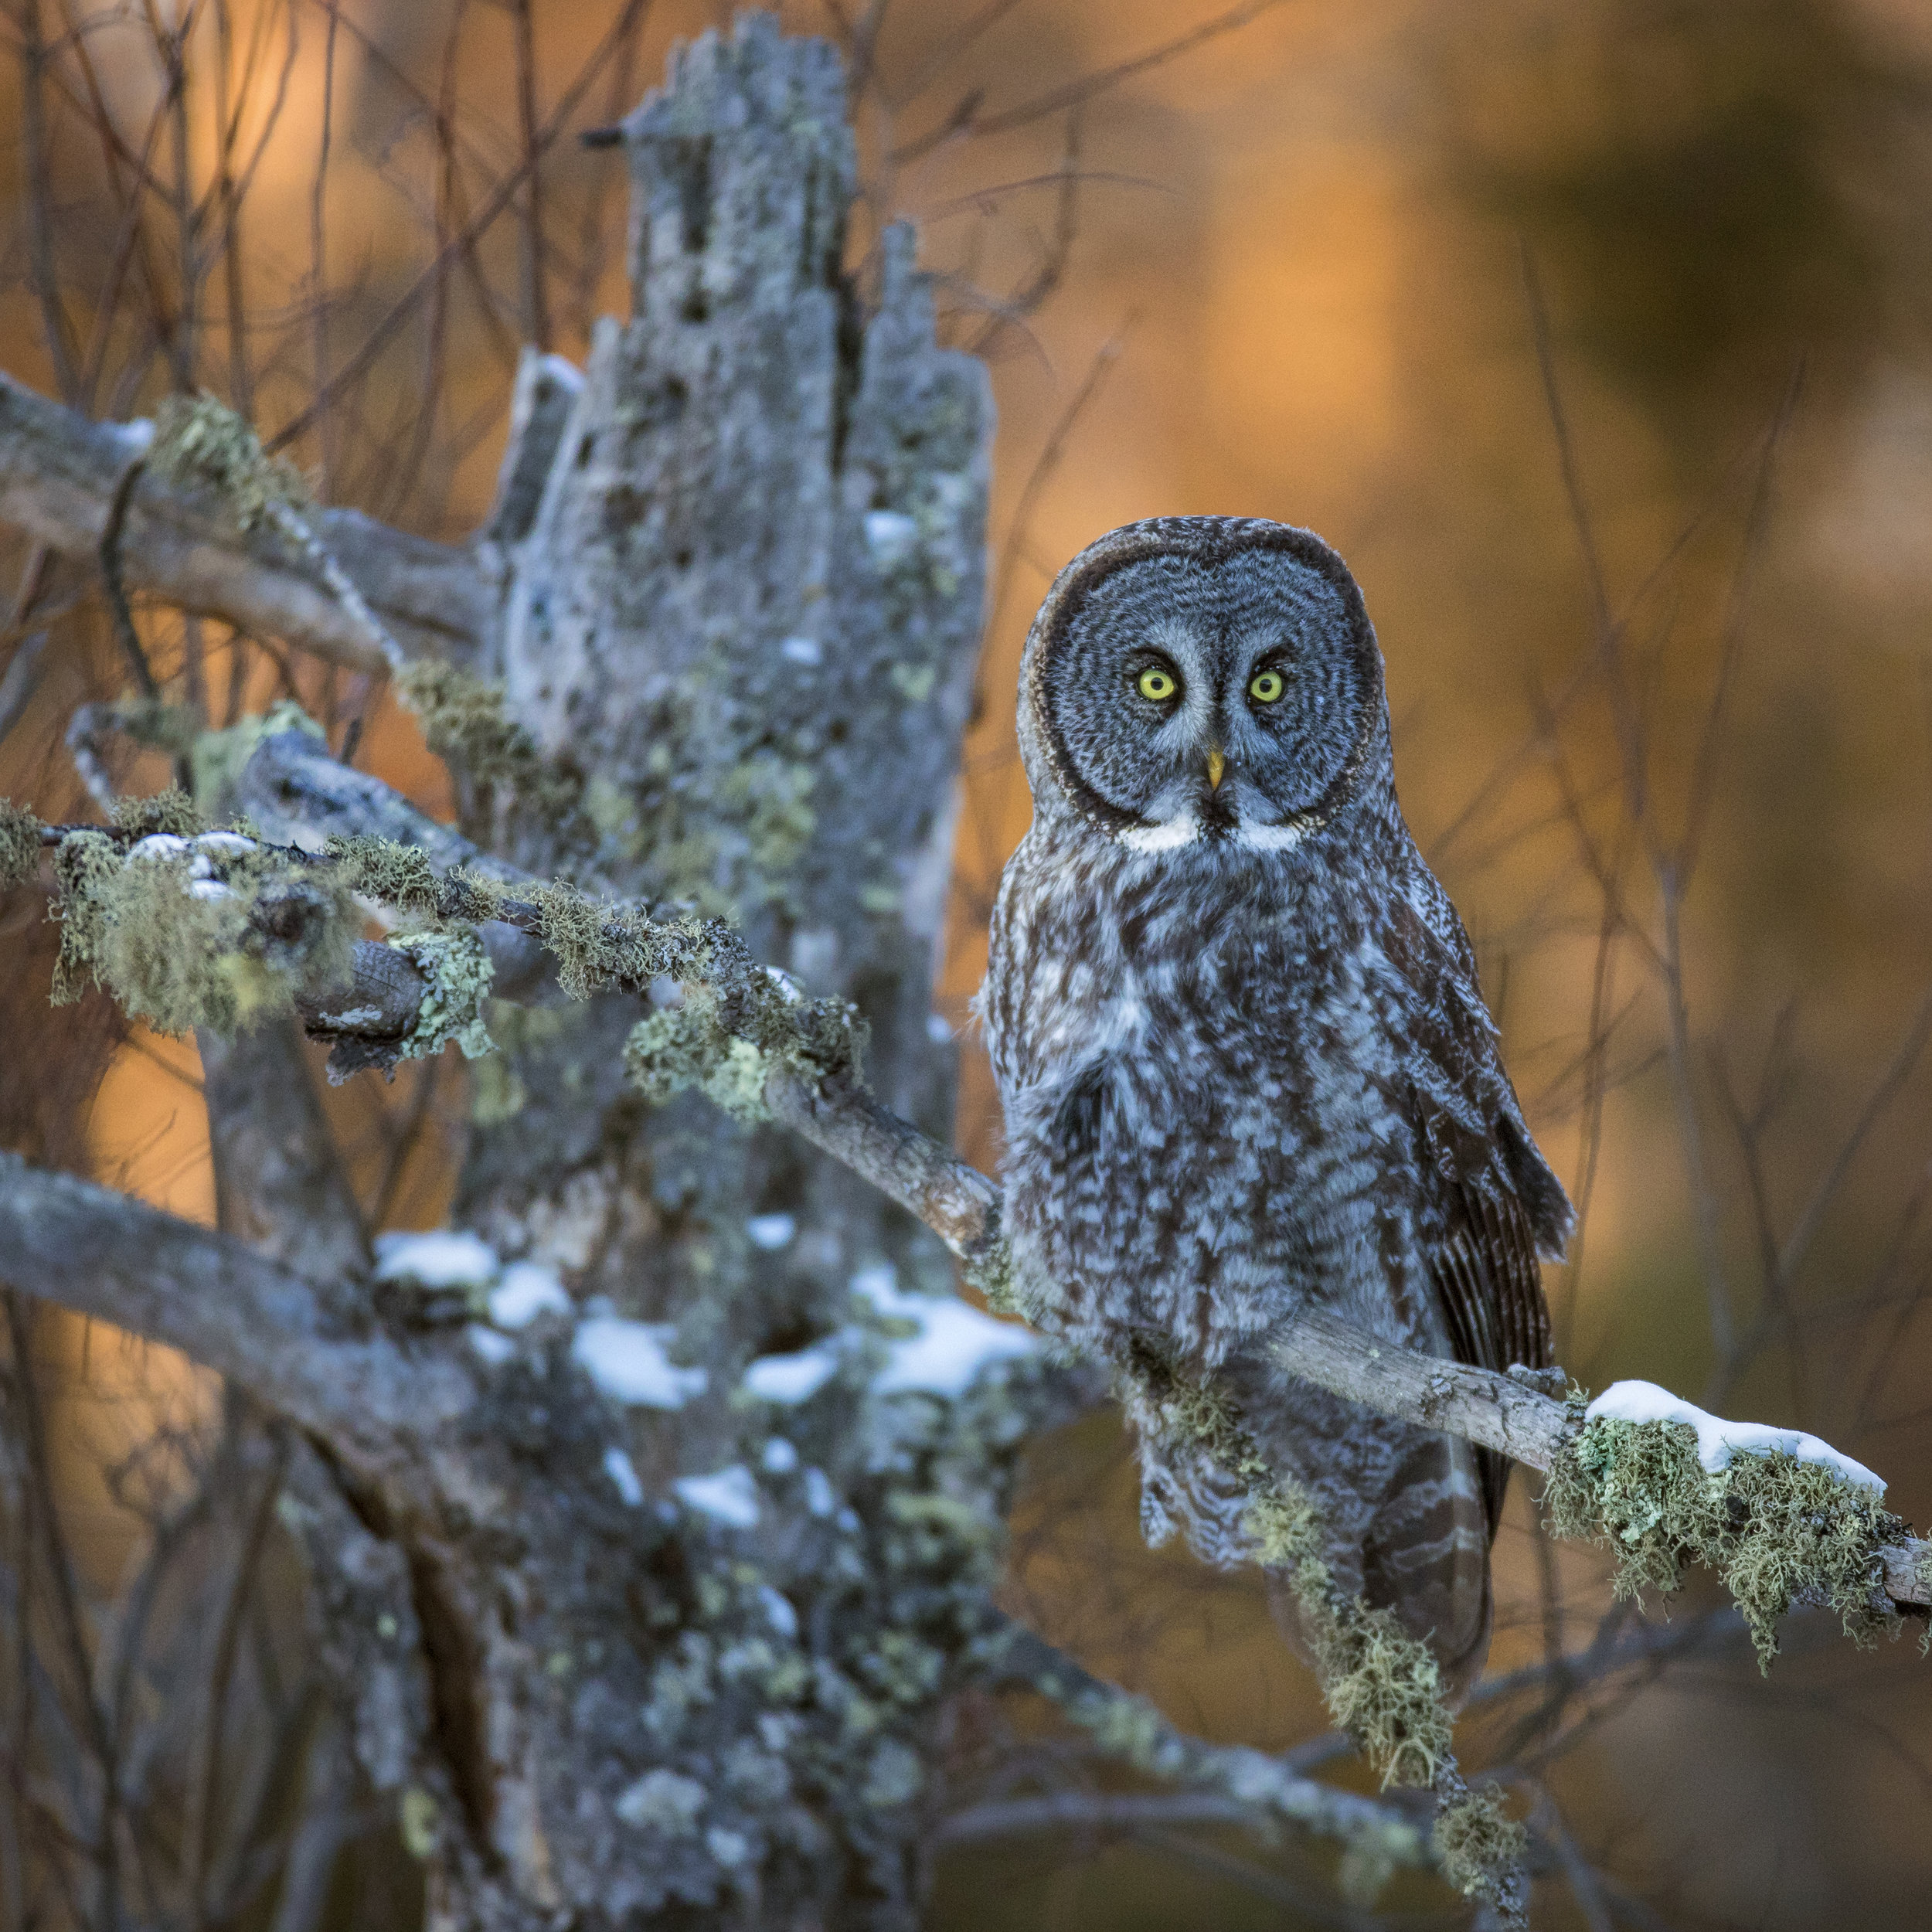 Great Grey Owls - FebruaryTravel to northern Minnesota to photograph the Great Grey Owl. This large Owl is one of the most sought after Owls to photograph in the United States.On this excursion you will get a first hand look at the Great Grey's habitat and how this owl amazingly pin points its prey under the snow. Often other owls can be photographed such as the Northern Hawk Owl, Barred Owl, Arctic Great Horned Owls and Boreal Owls on this trip.